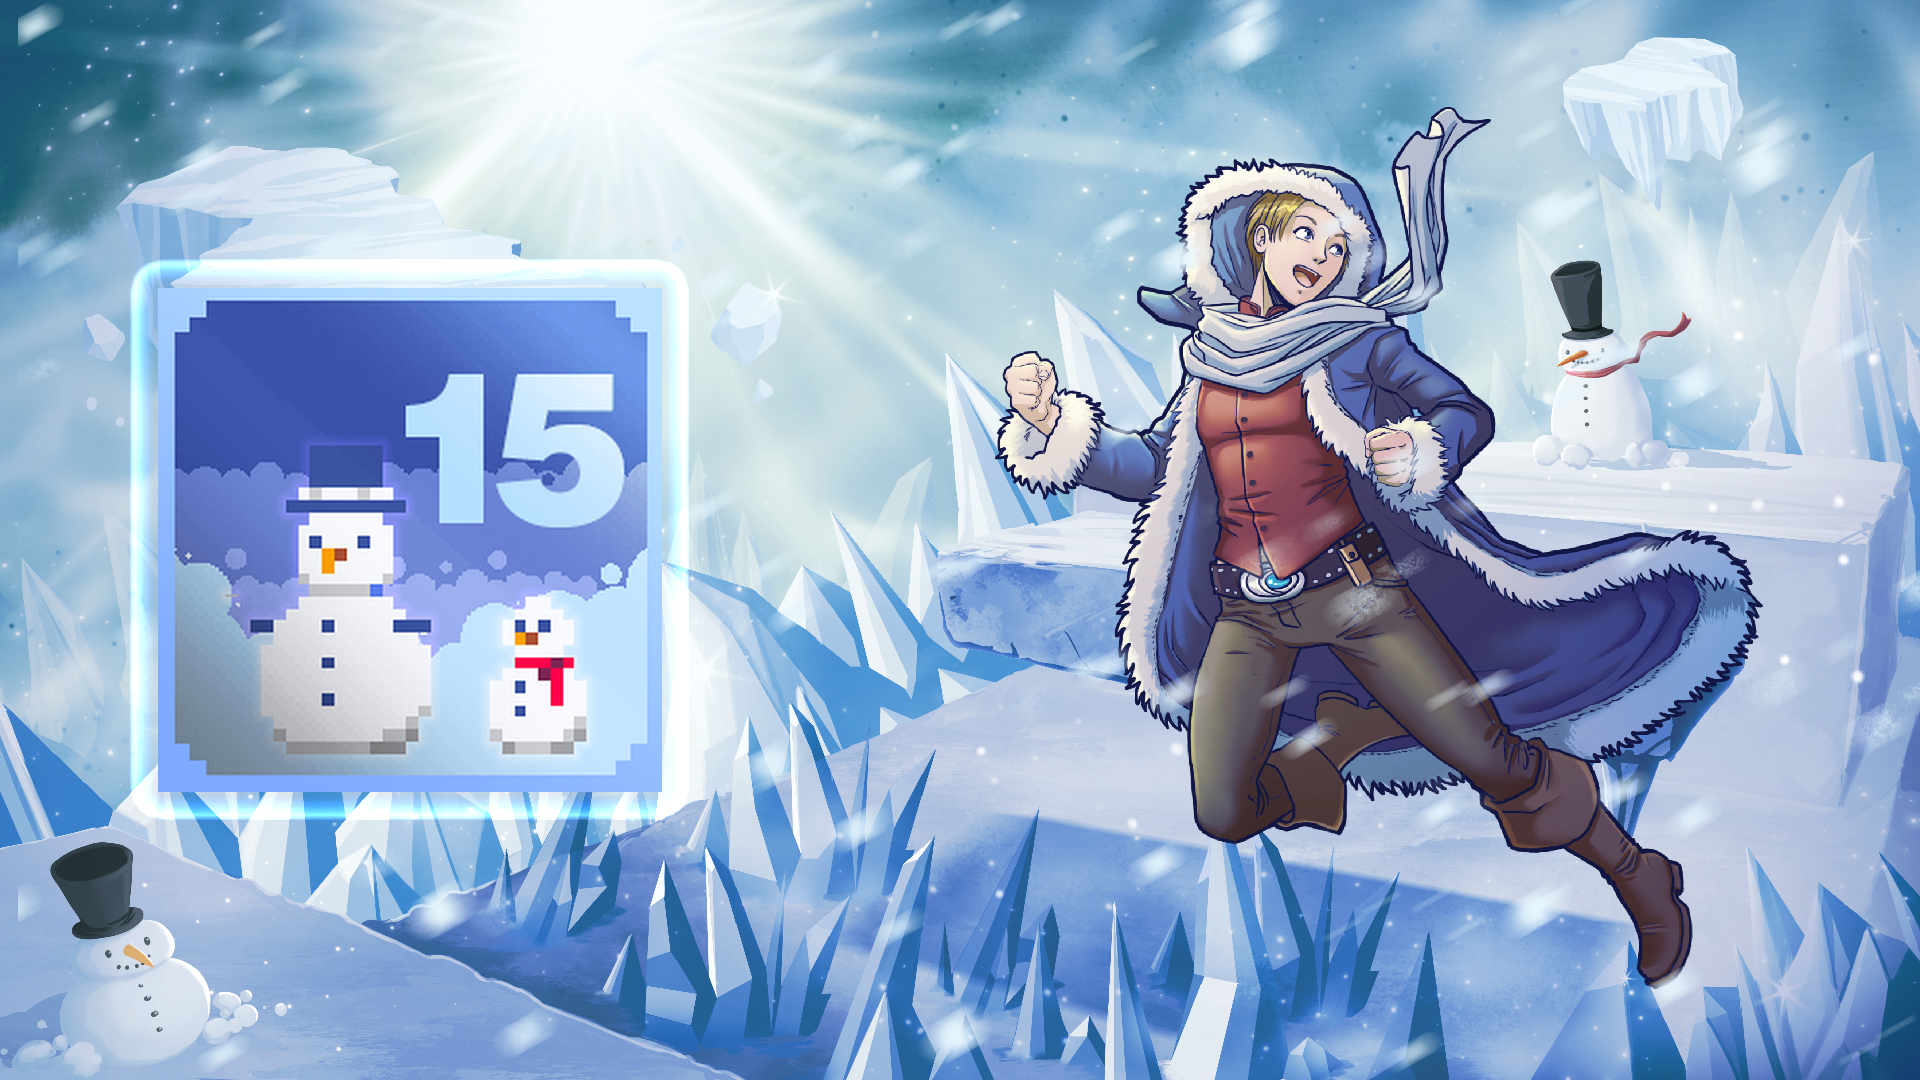 Icon for Level 15